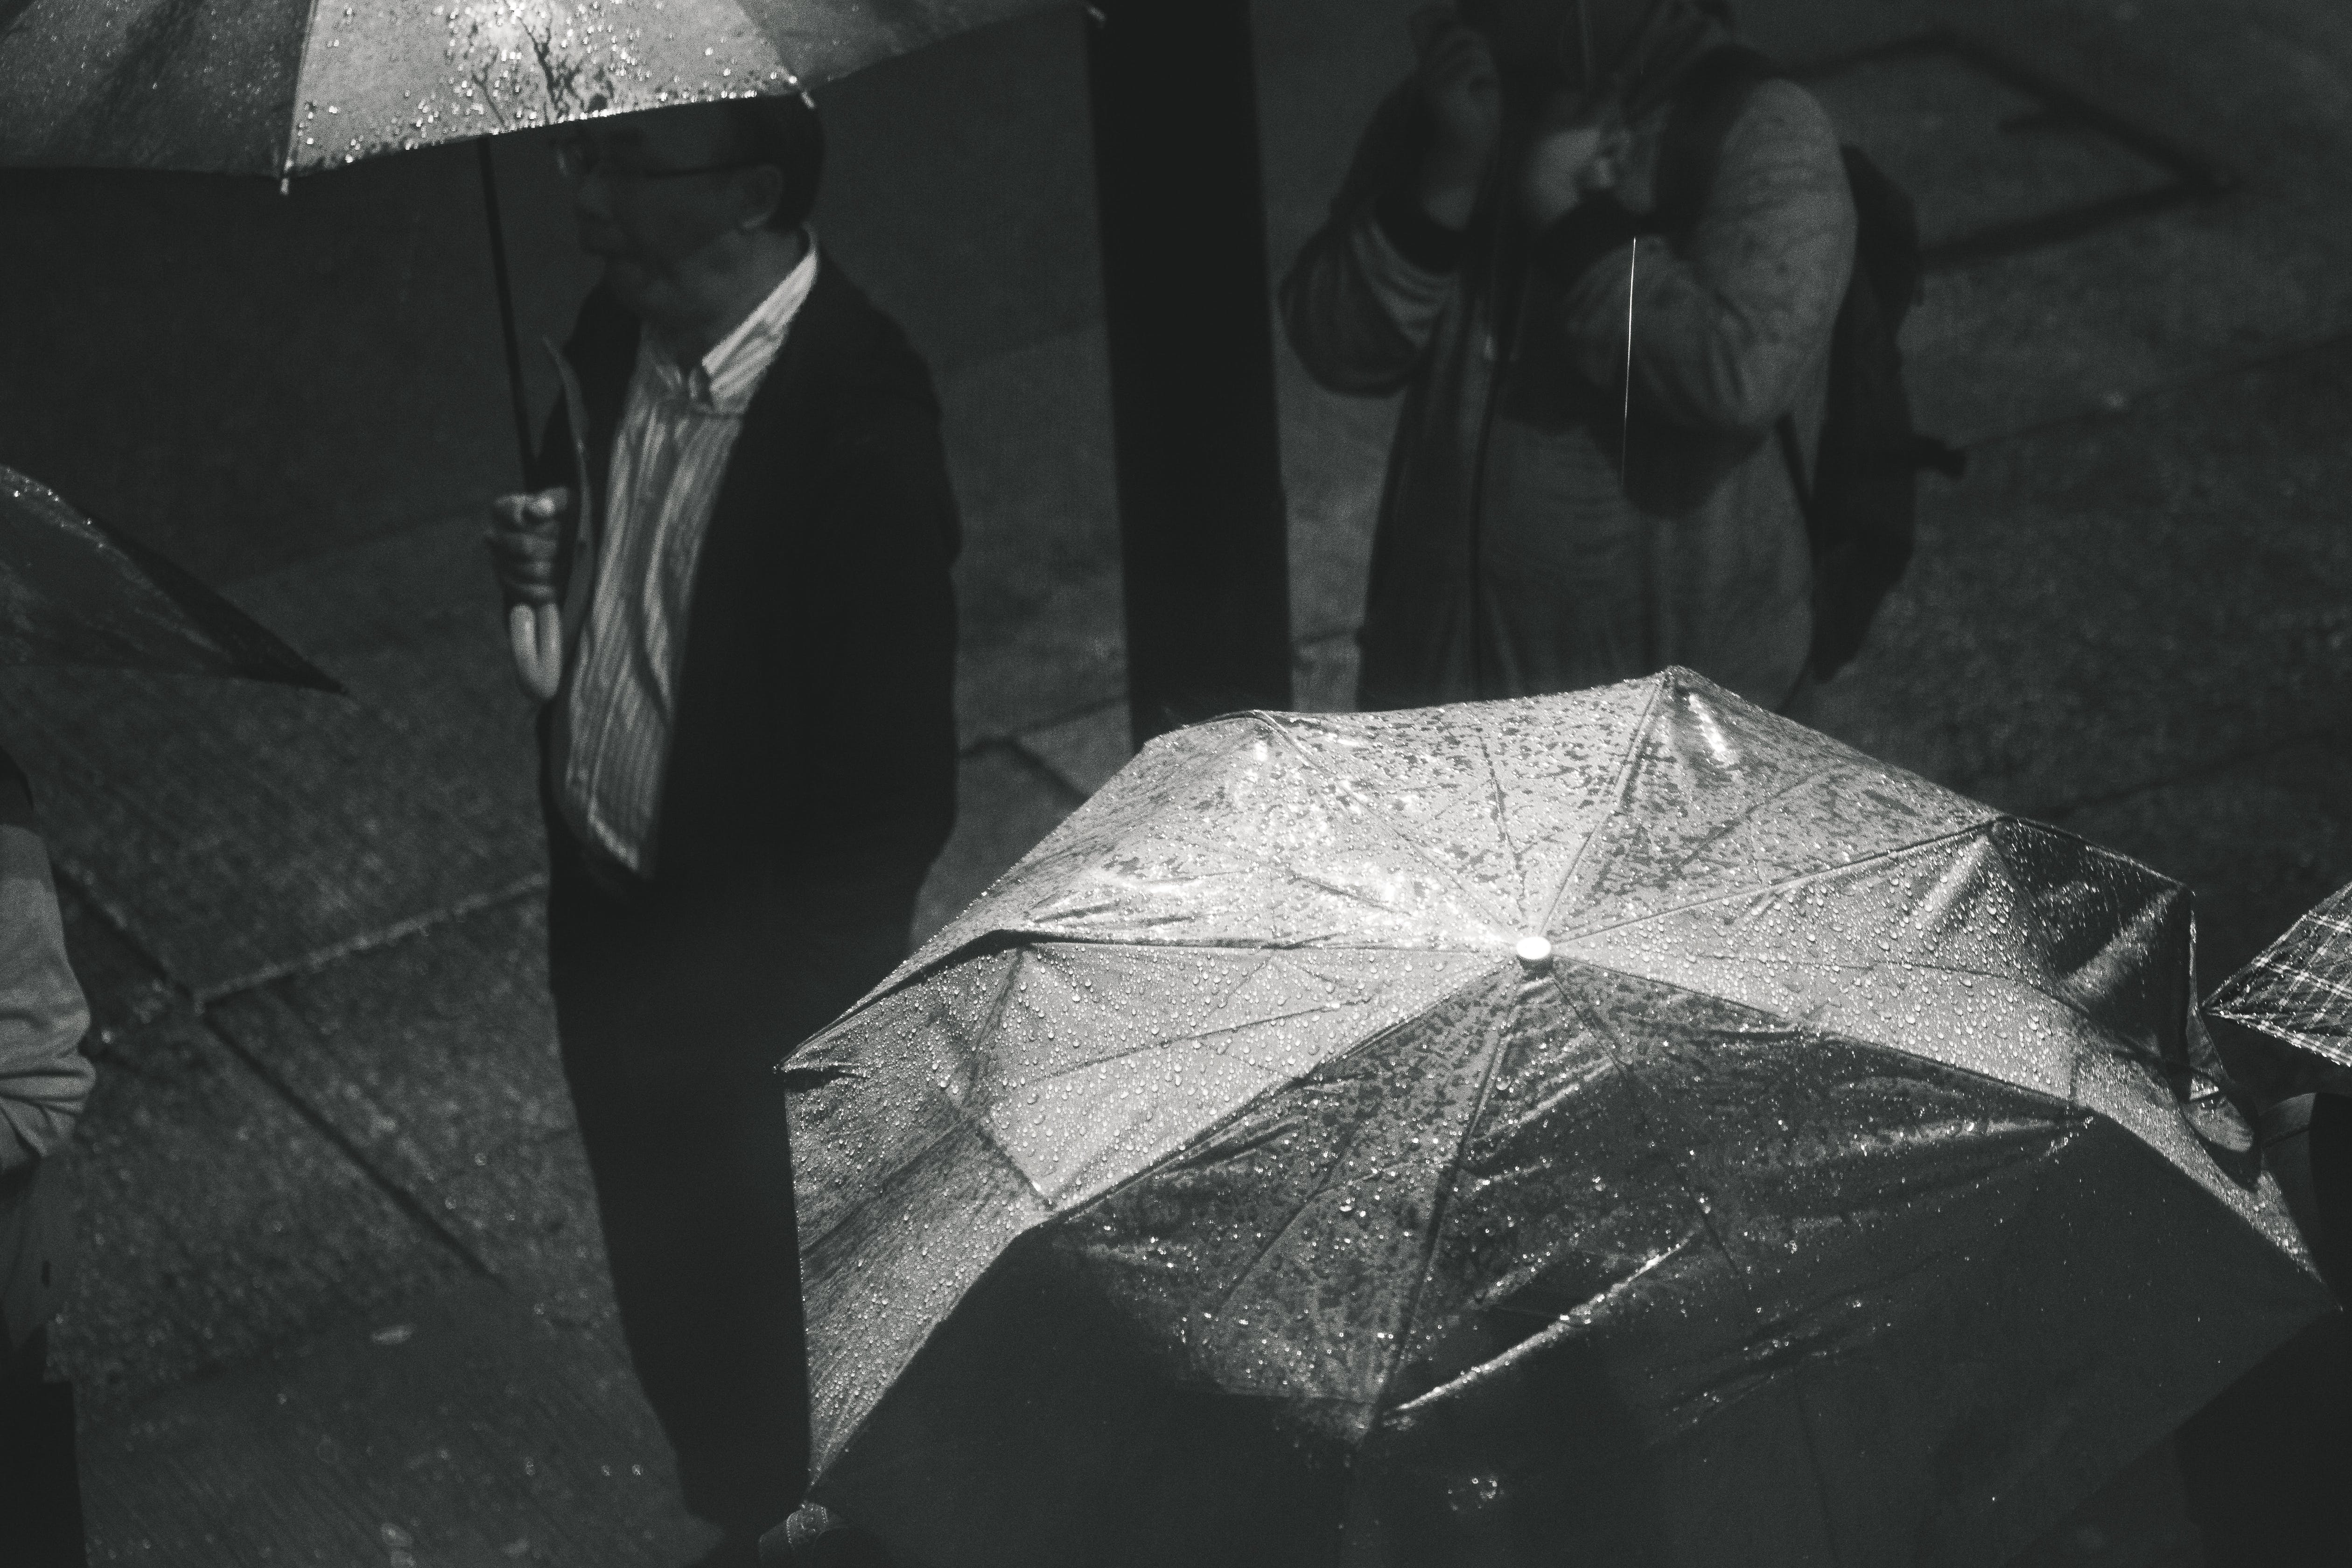 Greyscale Photo of Man Holding Umbrella While Raining